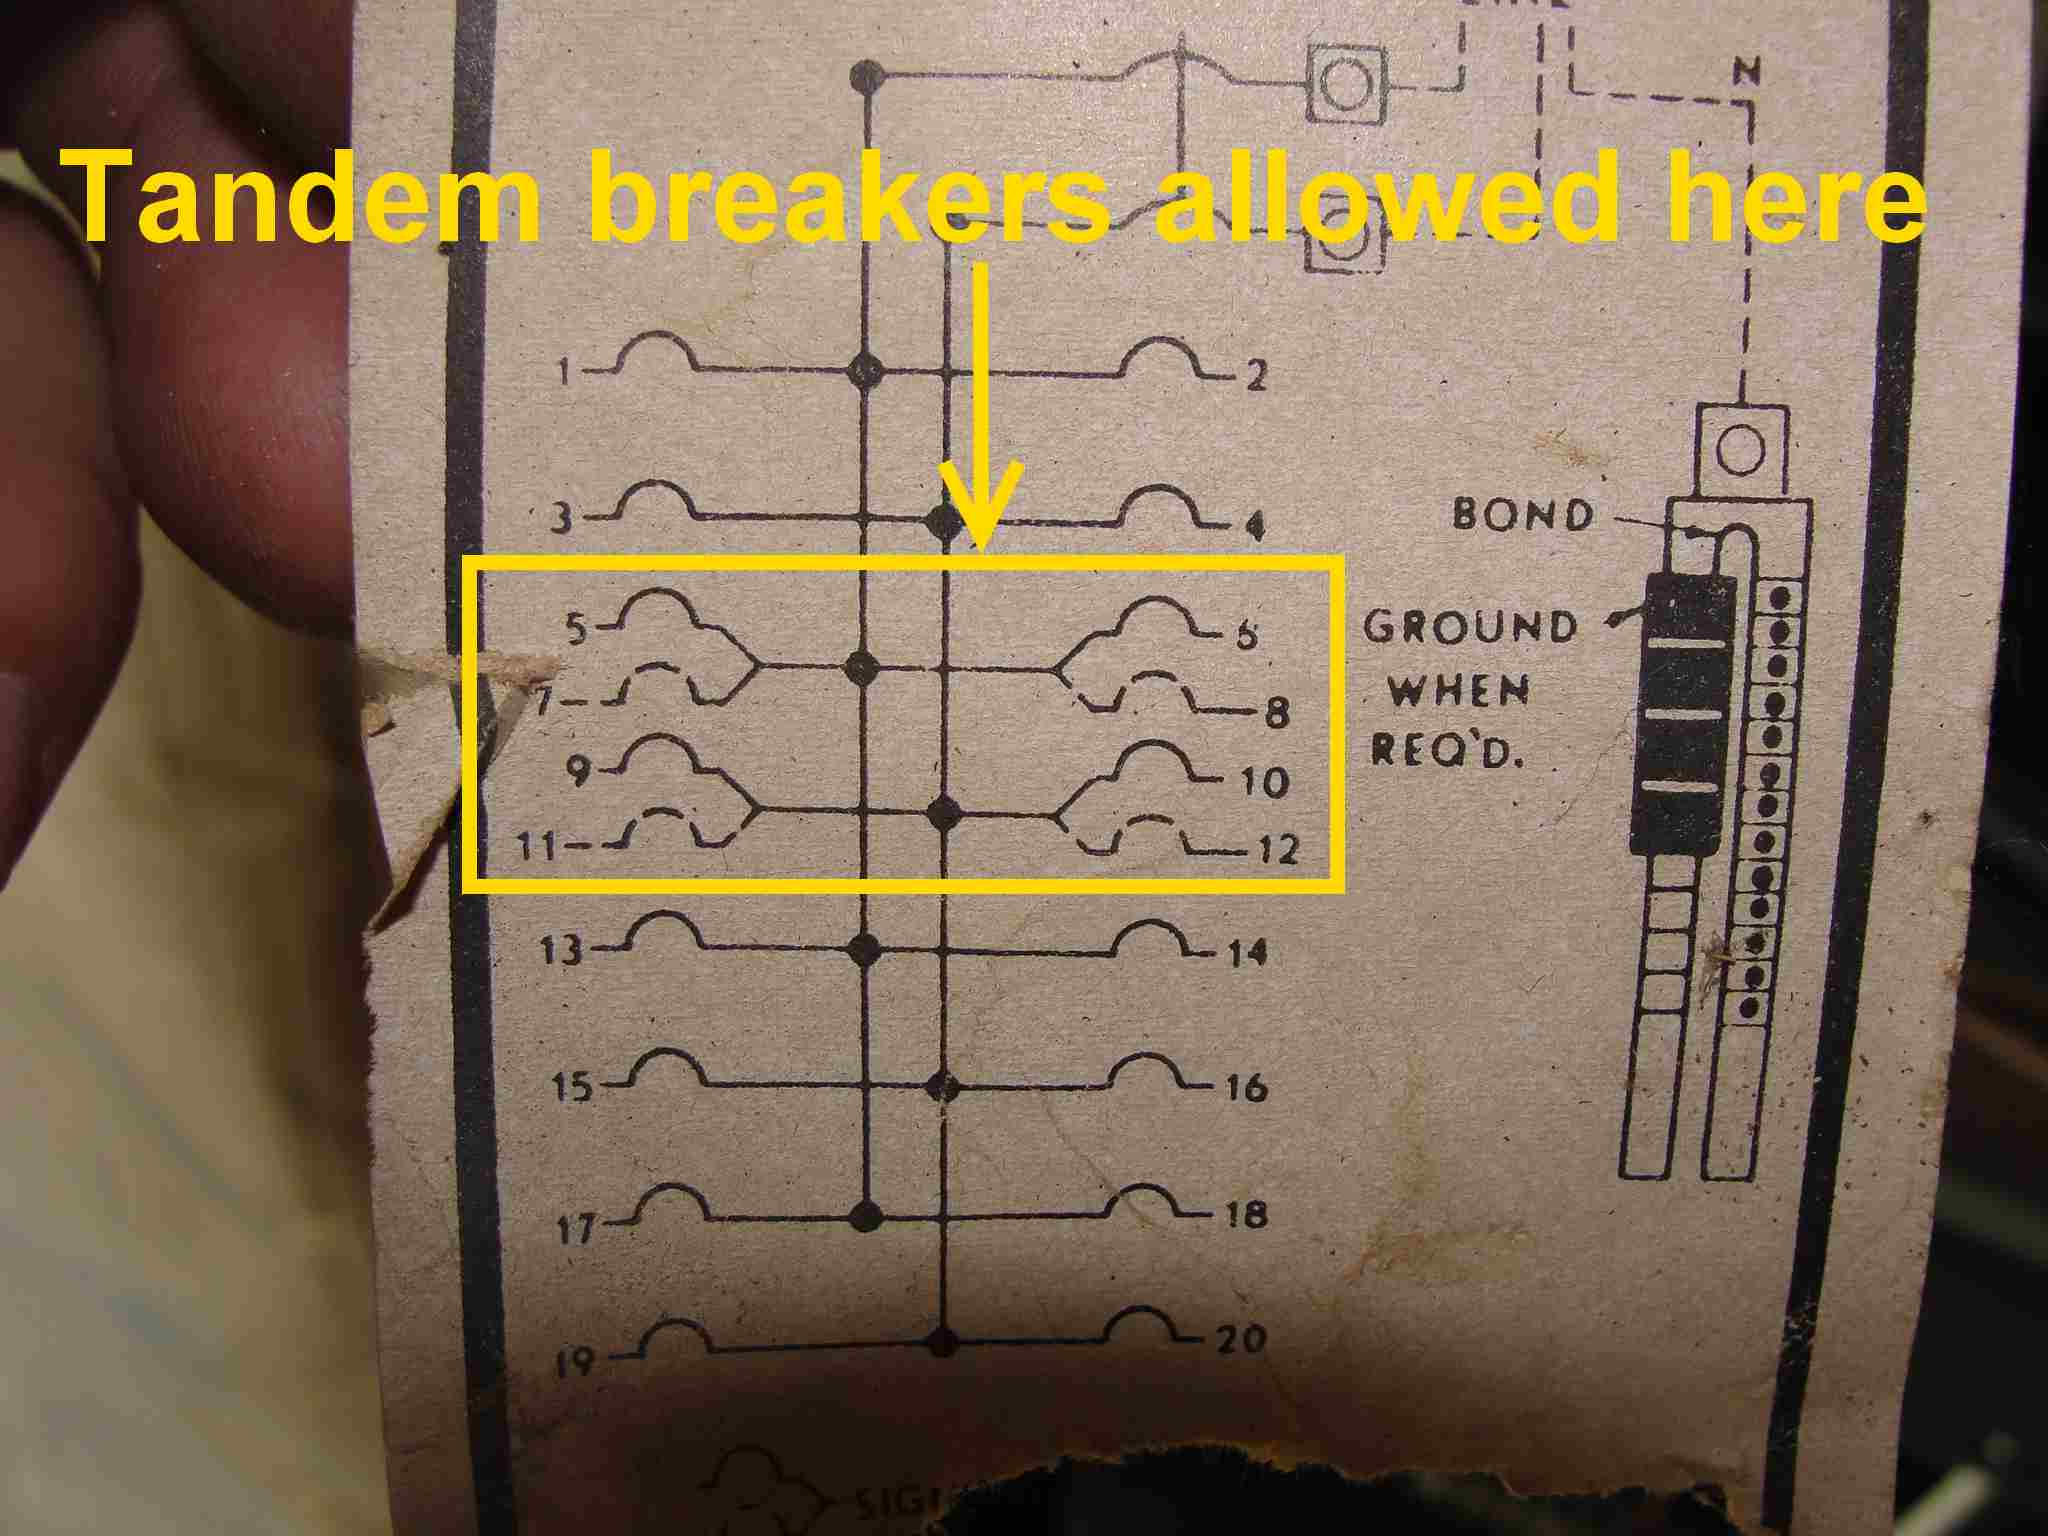 square d breaker box wiring diagram telephone wire connection cheater breakers homesmsp